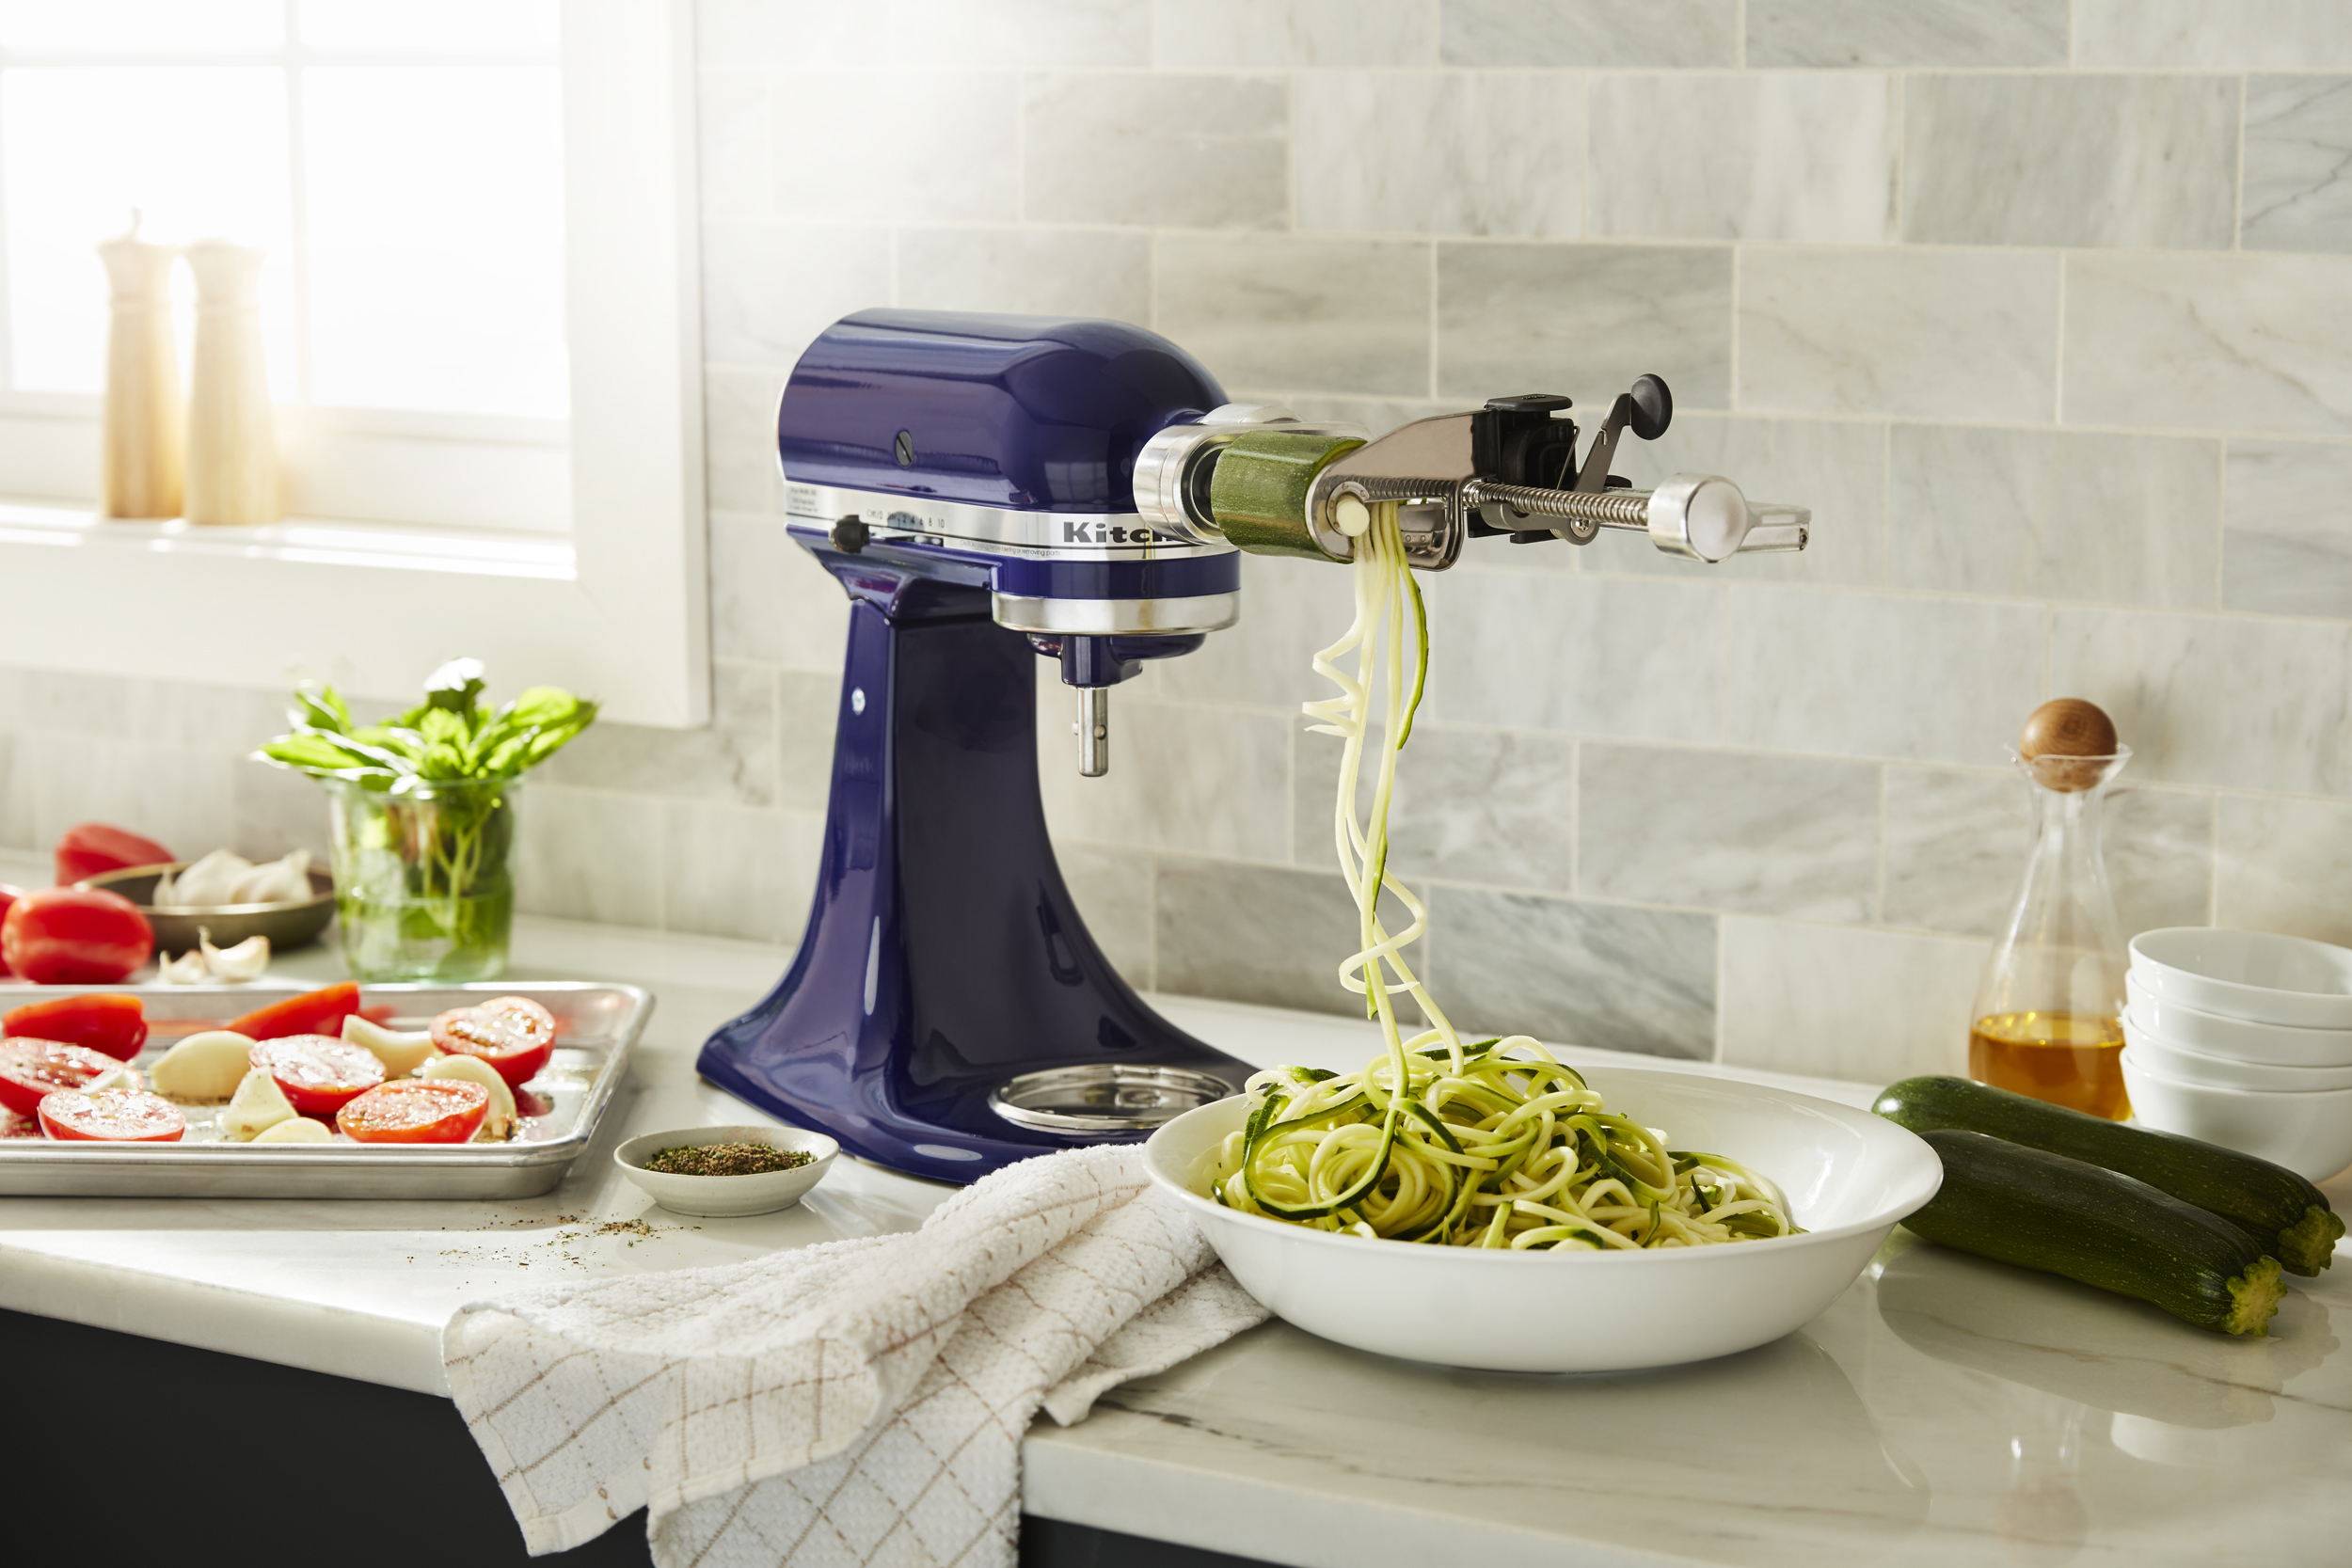 Walmart Has Kitchenaid Mixers On Sale For 229 That S Cheaper Than Amazon And Macy S